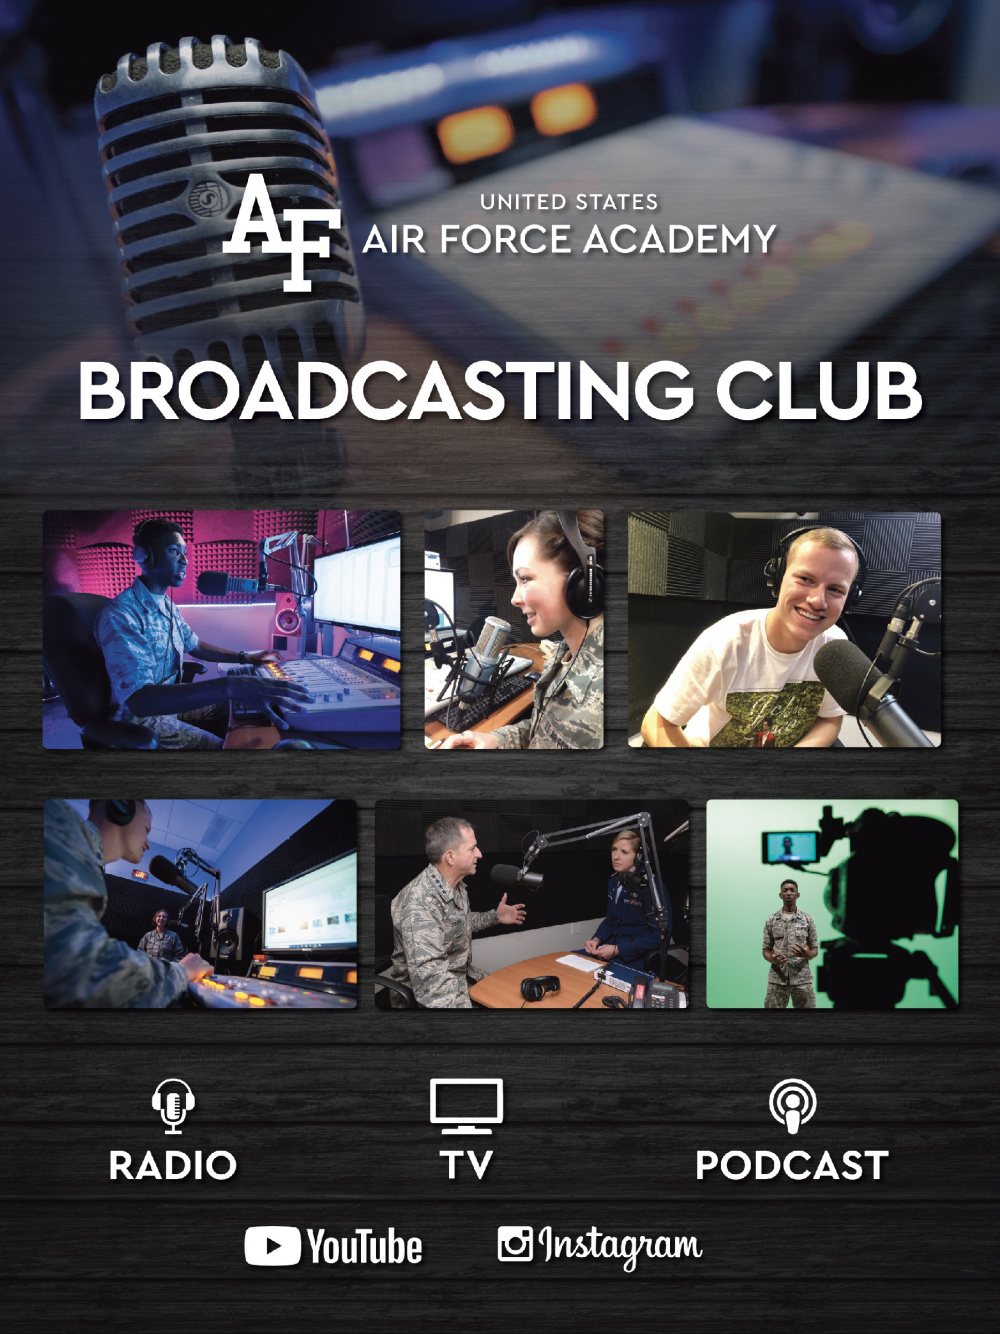 Broadcasting Club Poster